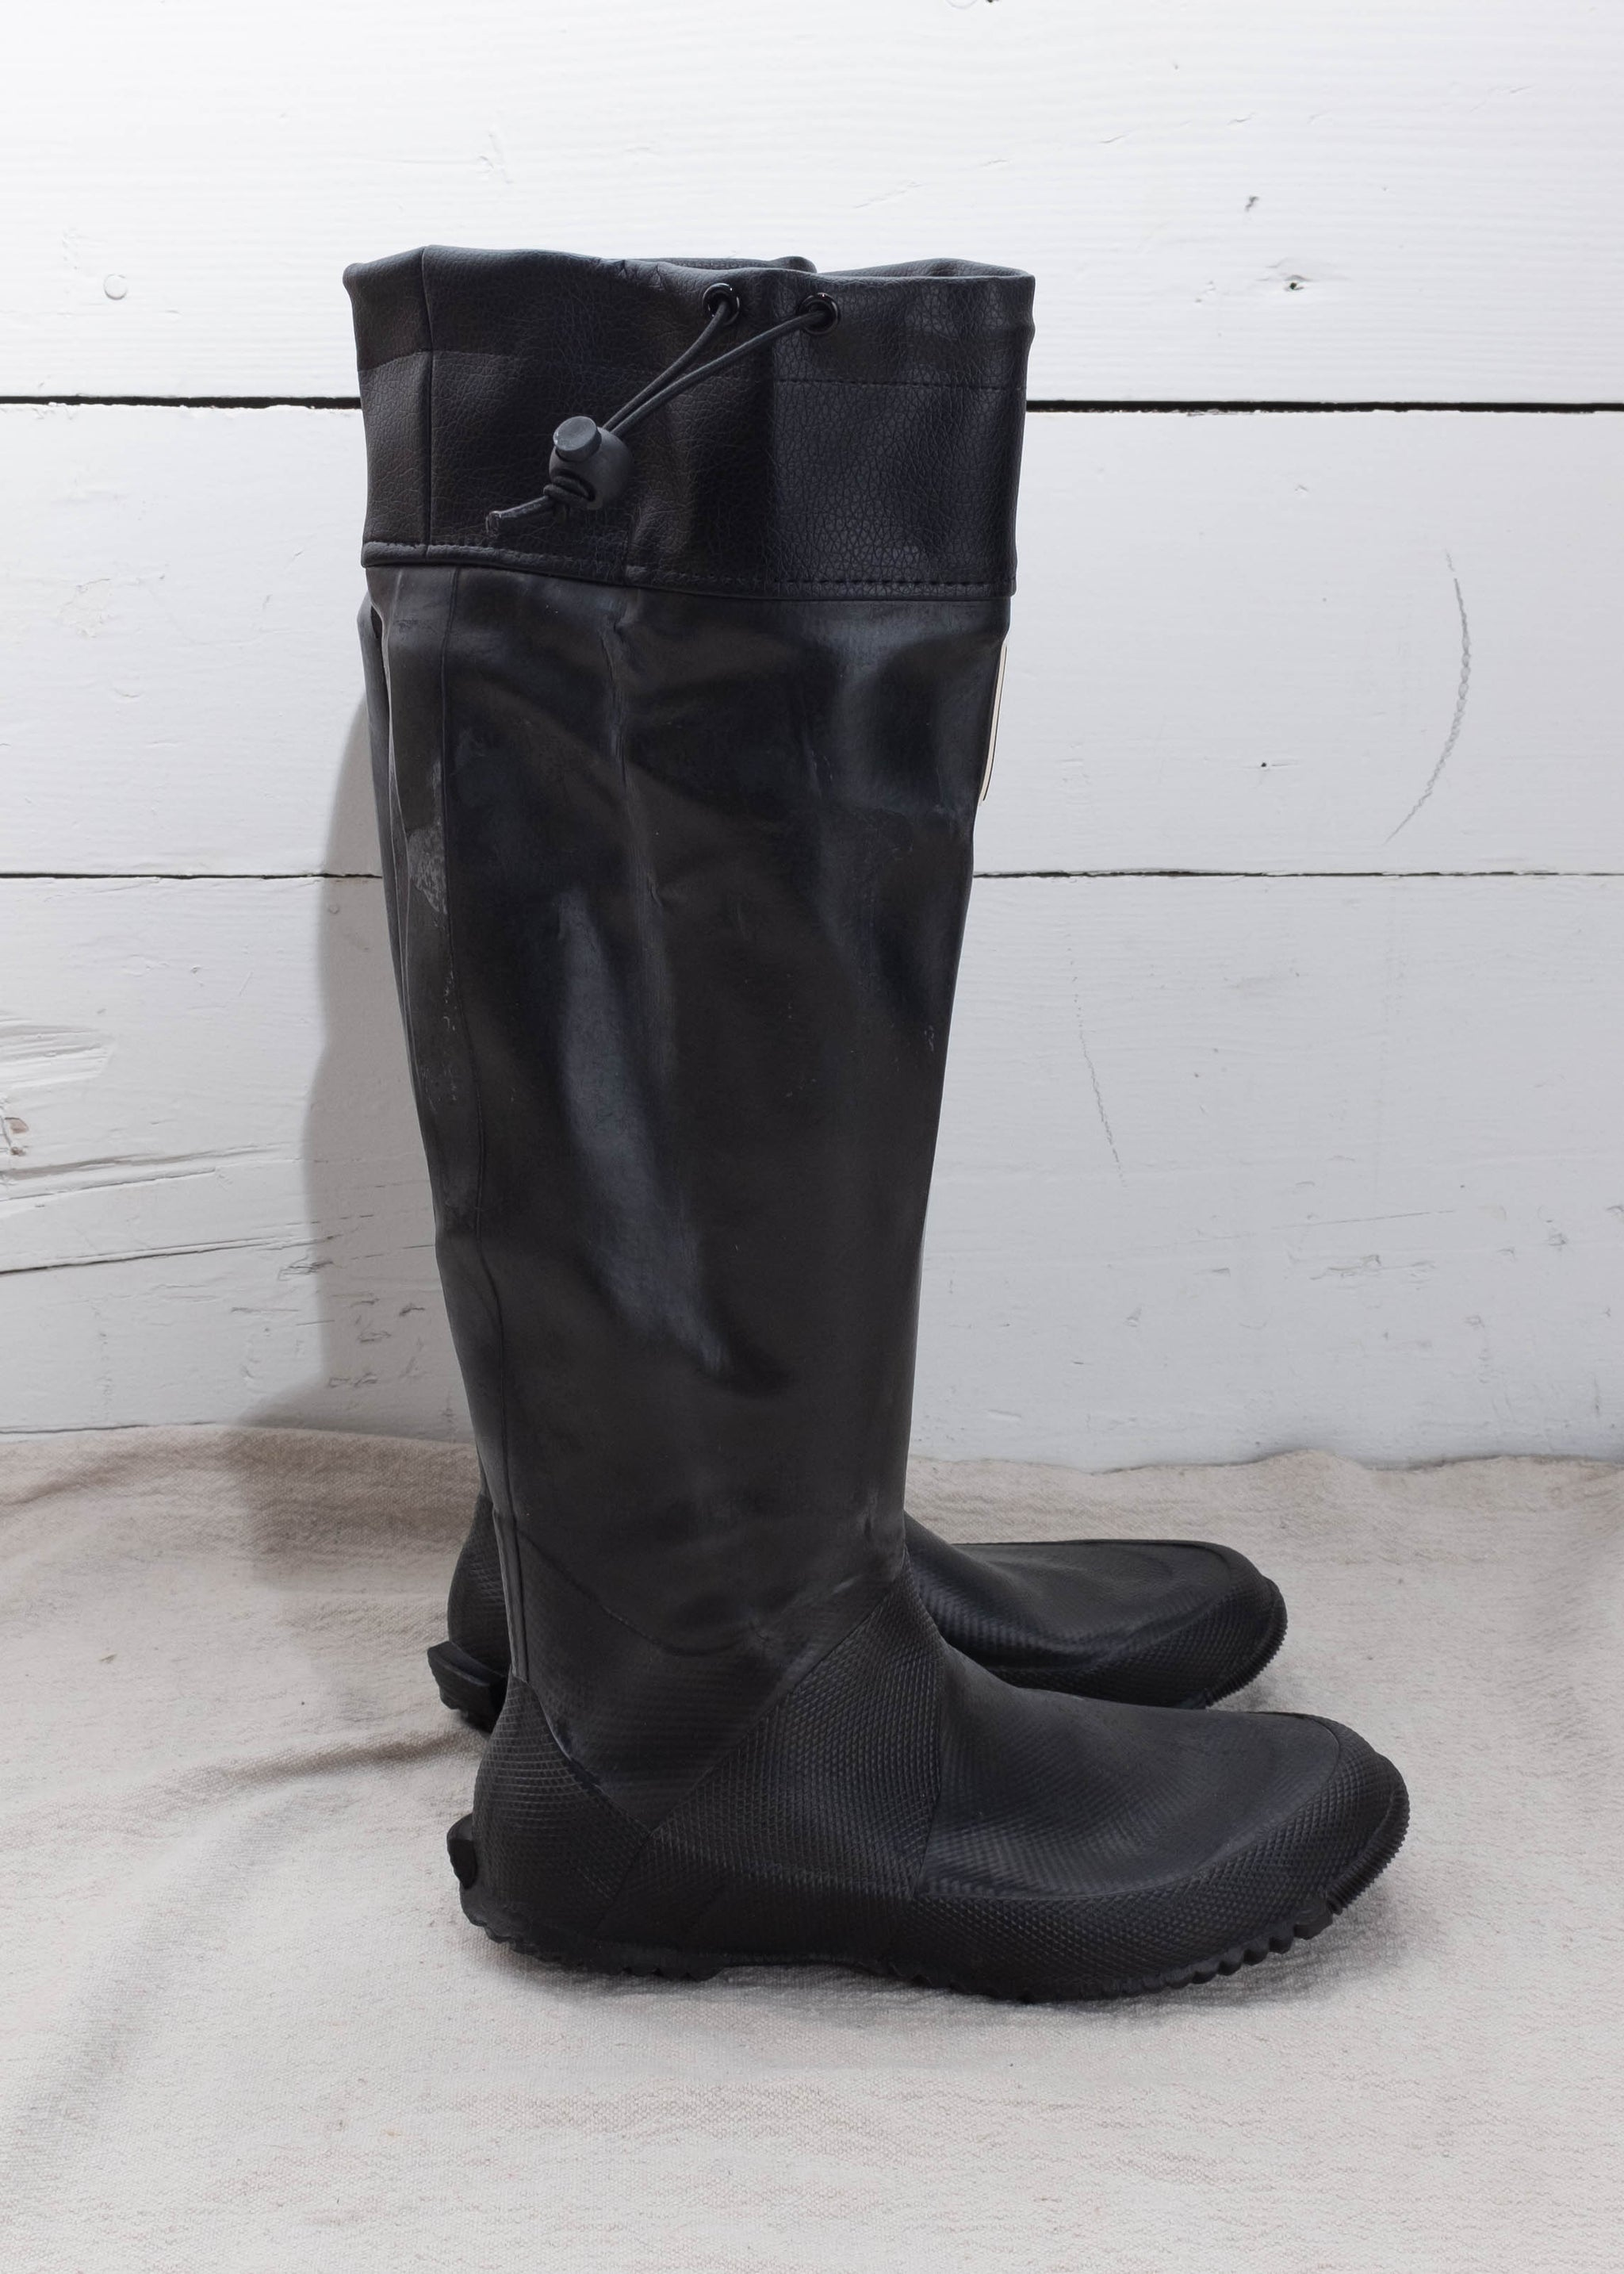 Black heavy duty rain boots with drawstring.